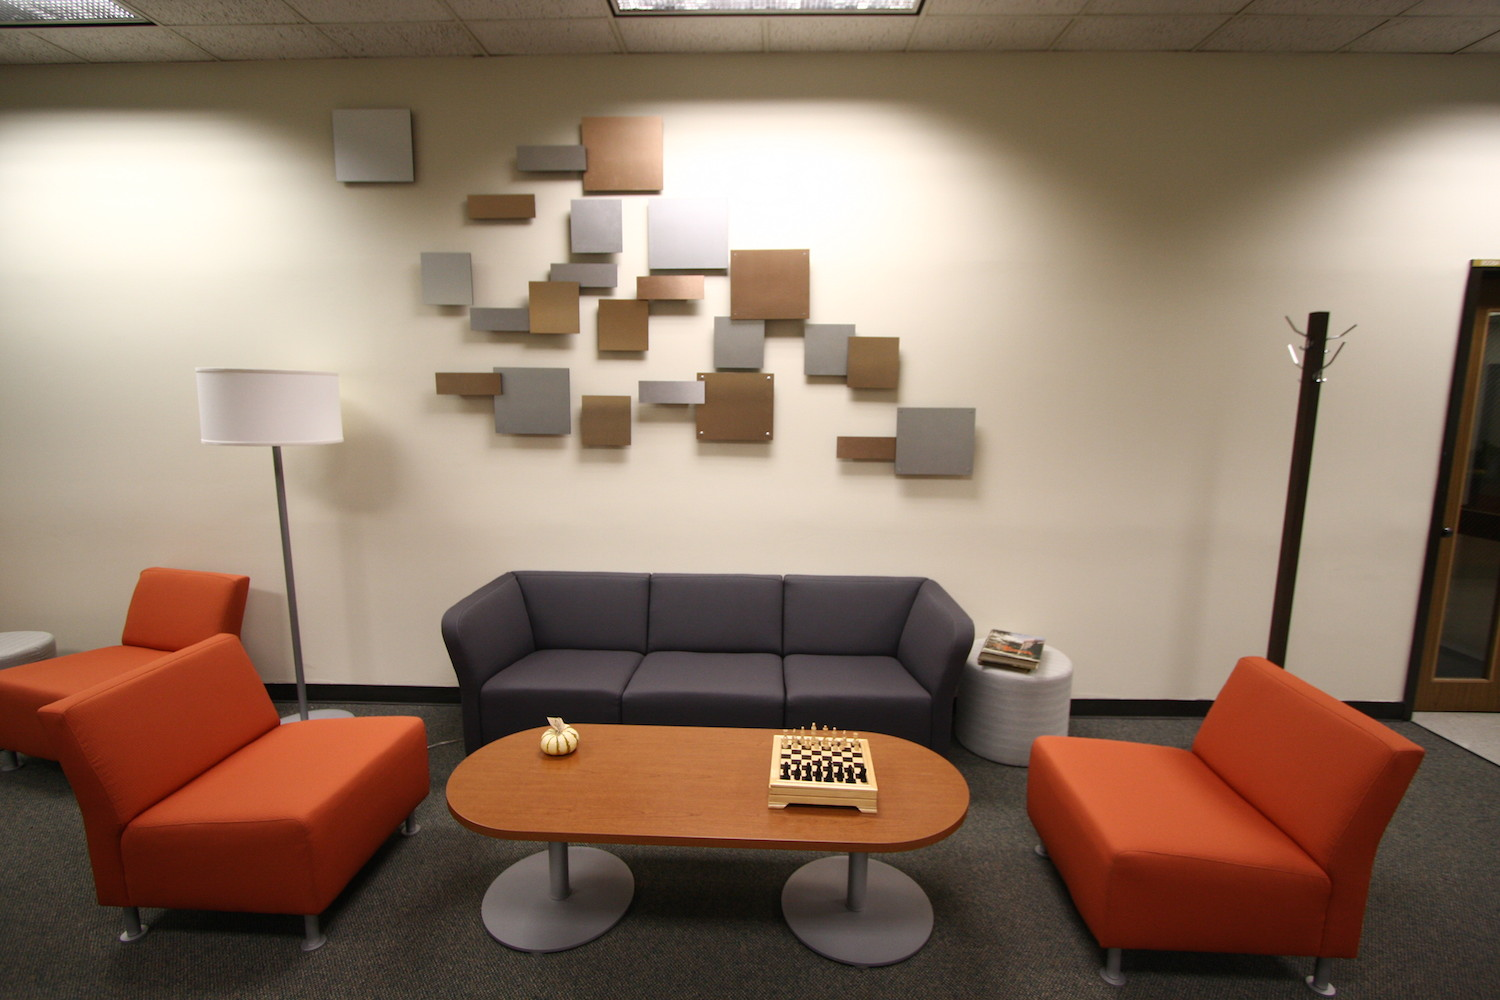 Sponsor wall display...Design by Graphic design students, in stalled by J.Beam Design + Craft